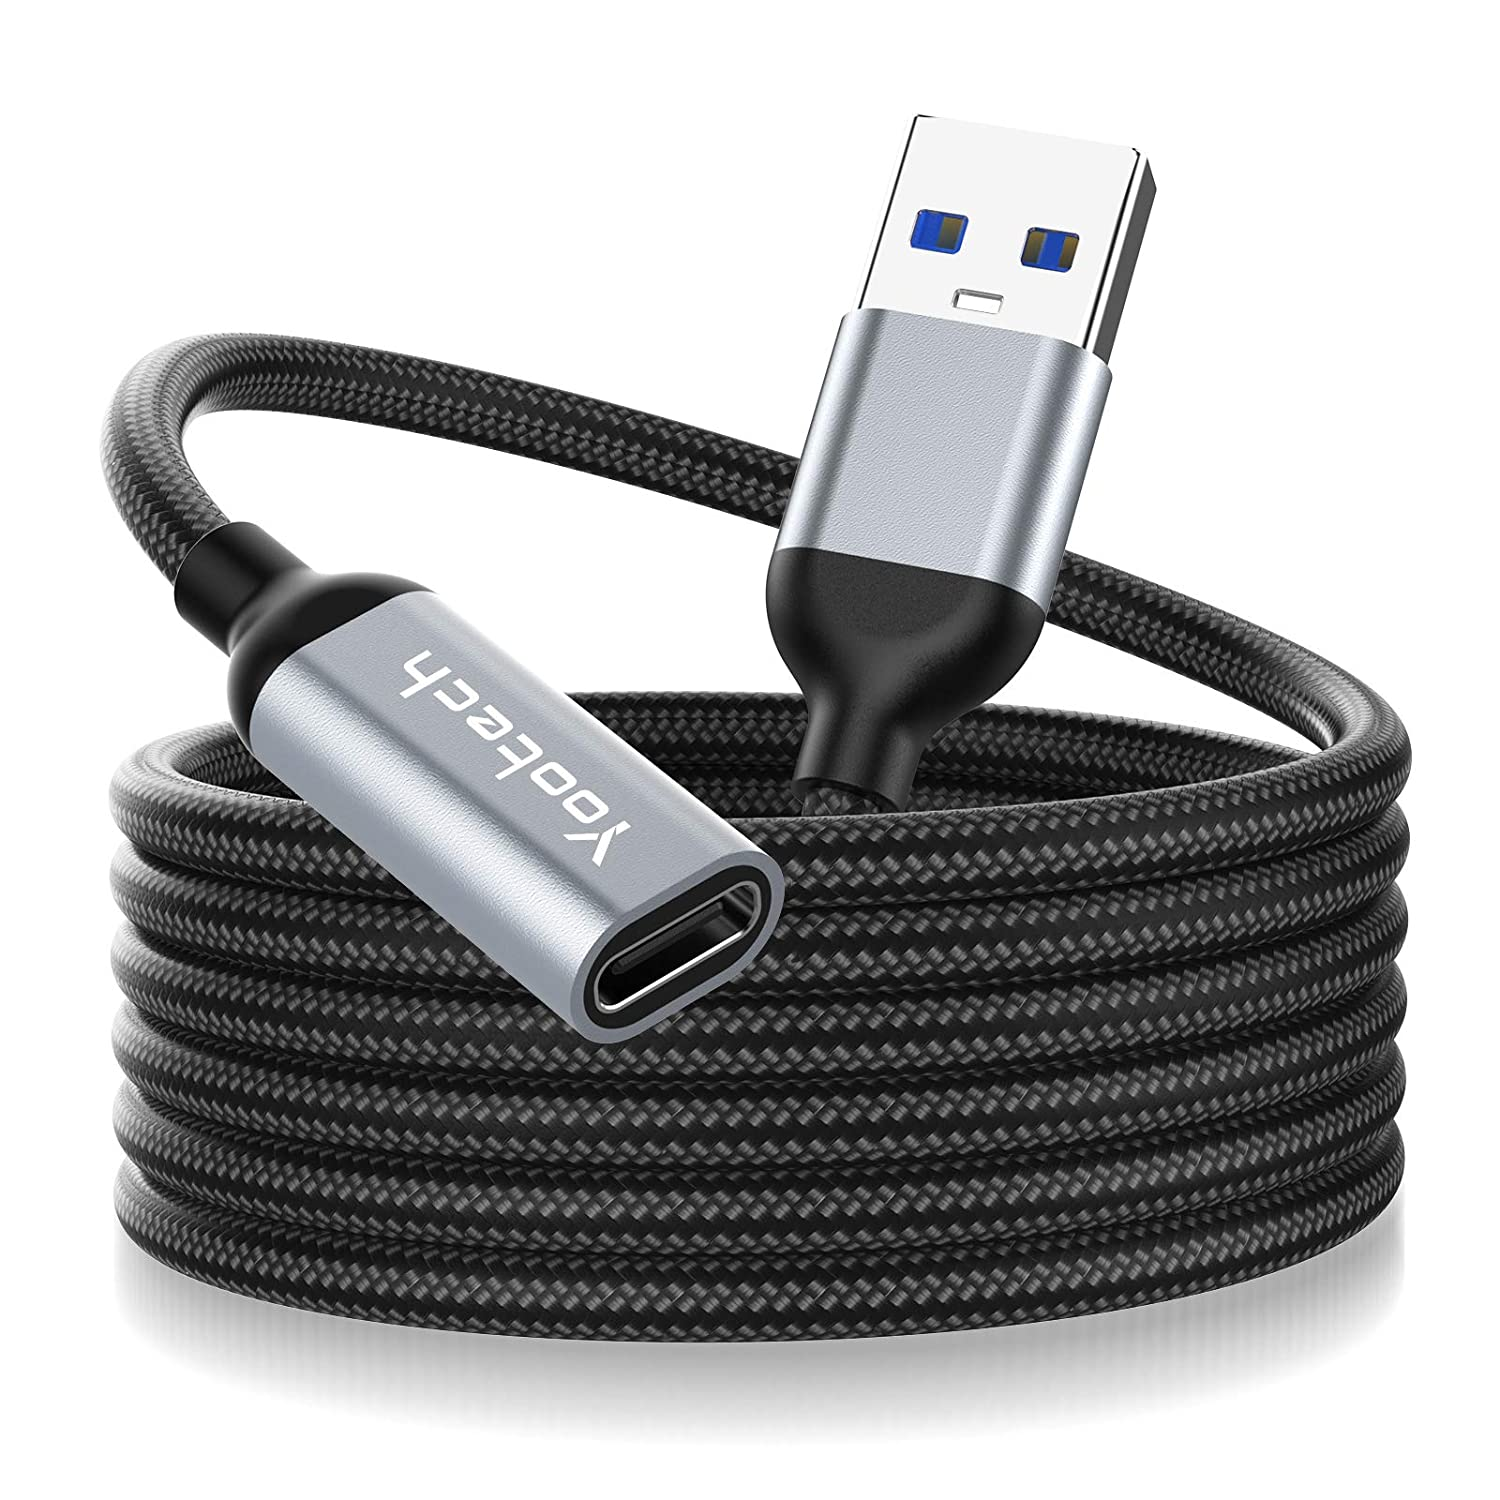 USB 3.1 Extension Cable,Yootech 3.3FT USB Type C Female to USB Male Extension Nylon Cord Adapter Cable,5Gbps Fast Data Transfer Compatible with iPhone 12/12 Pro Max,Galaxy S21,Type-C Cable/Hub/HDD